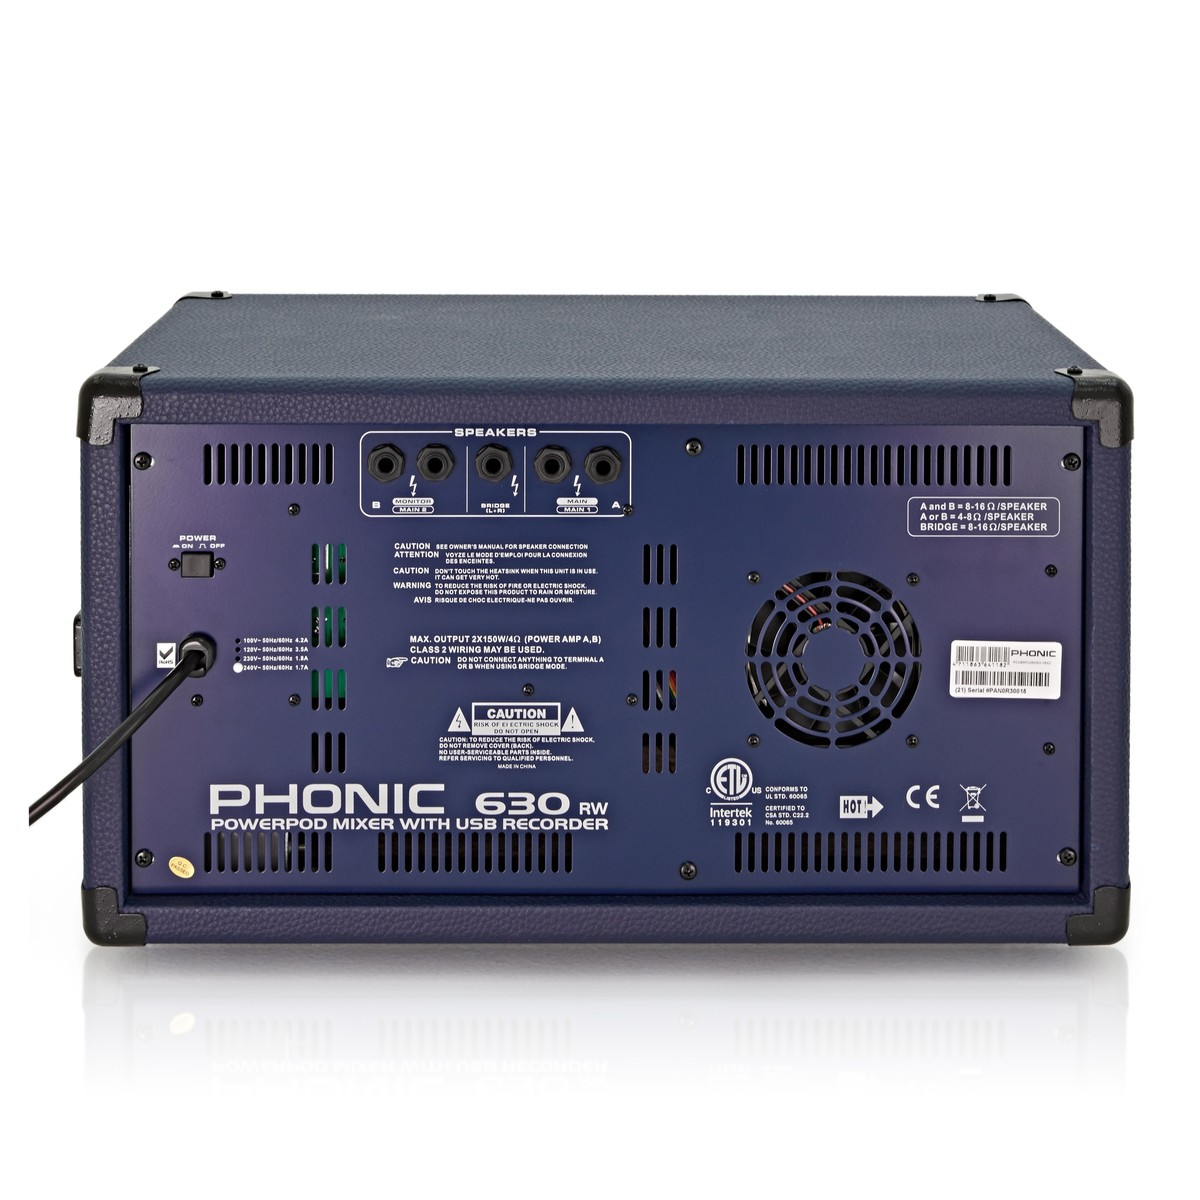 Phonic Powerpod630rw Powered Mixer With Usb Recorder Bluetooth At 8r 625w Loudspeaker Driven By Power Amplifier